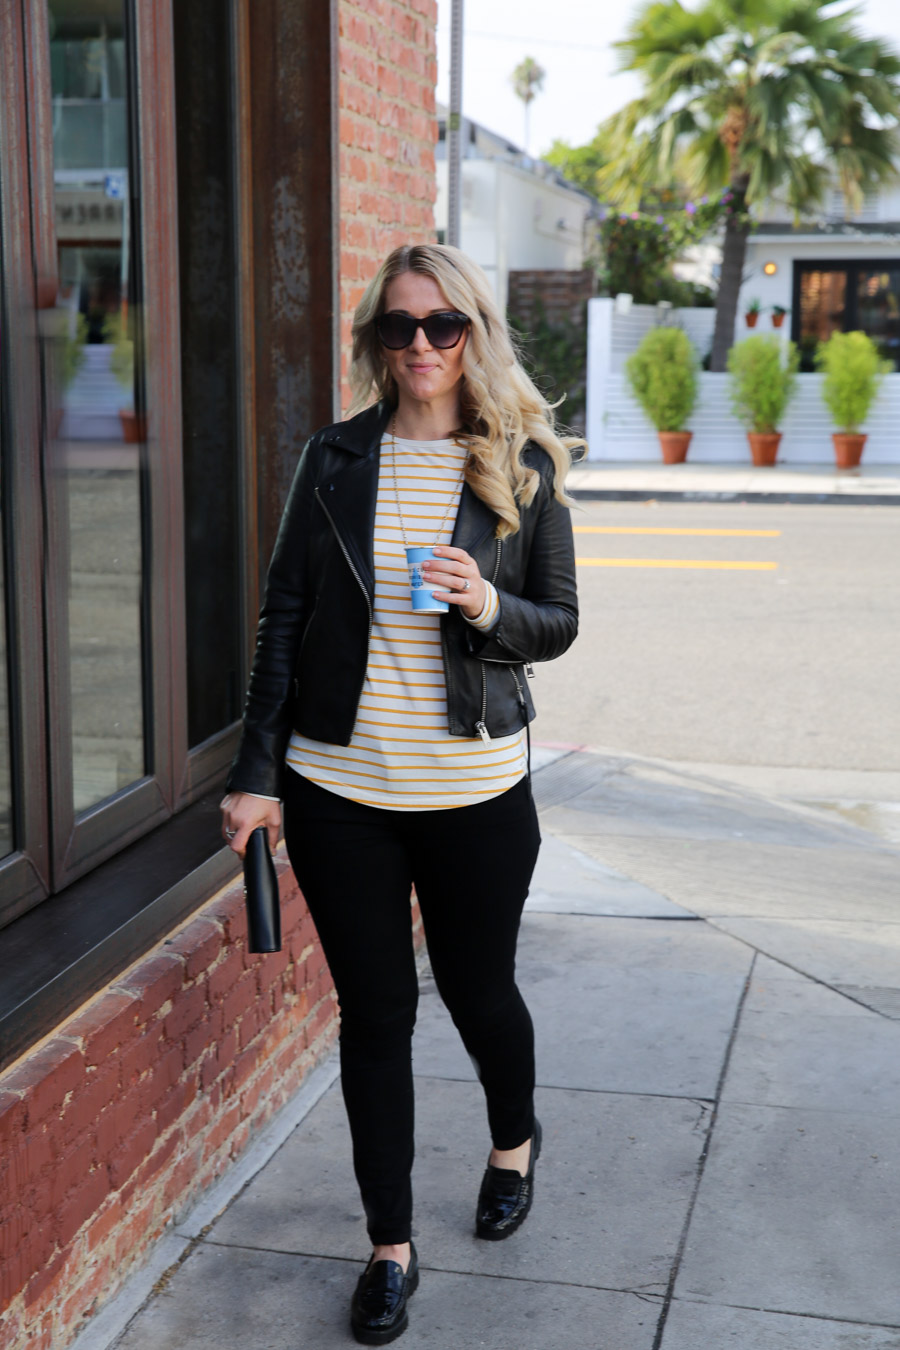 Yellow Striped Shirt Outfit w. Leather Jacket and Jeans